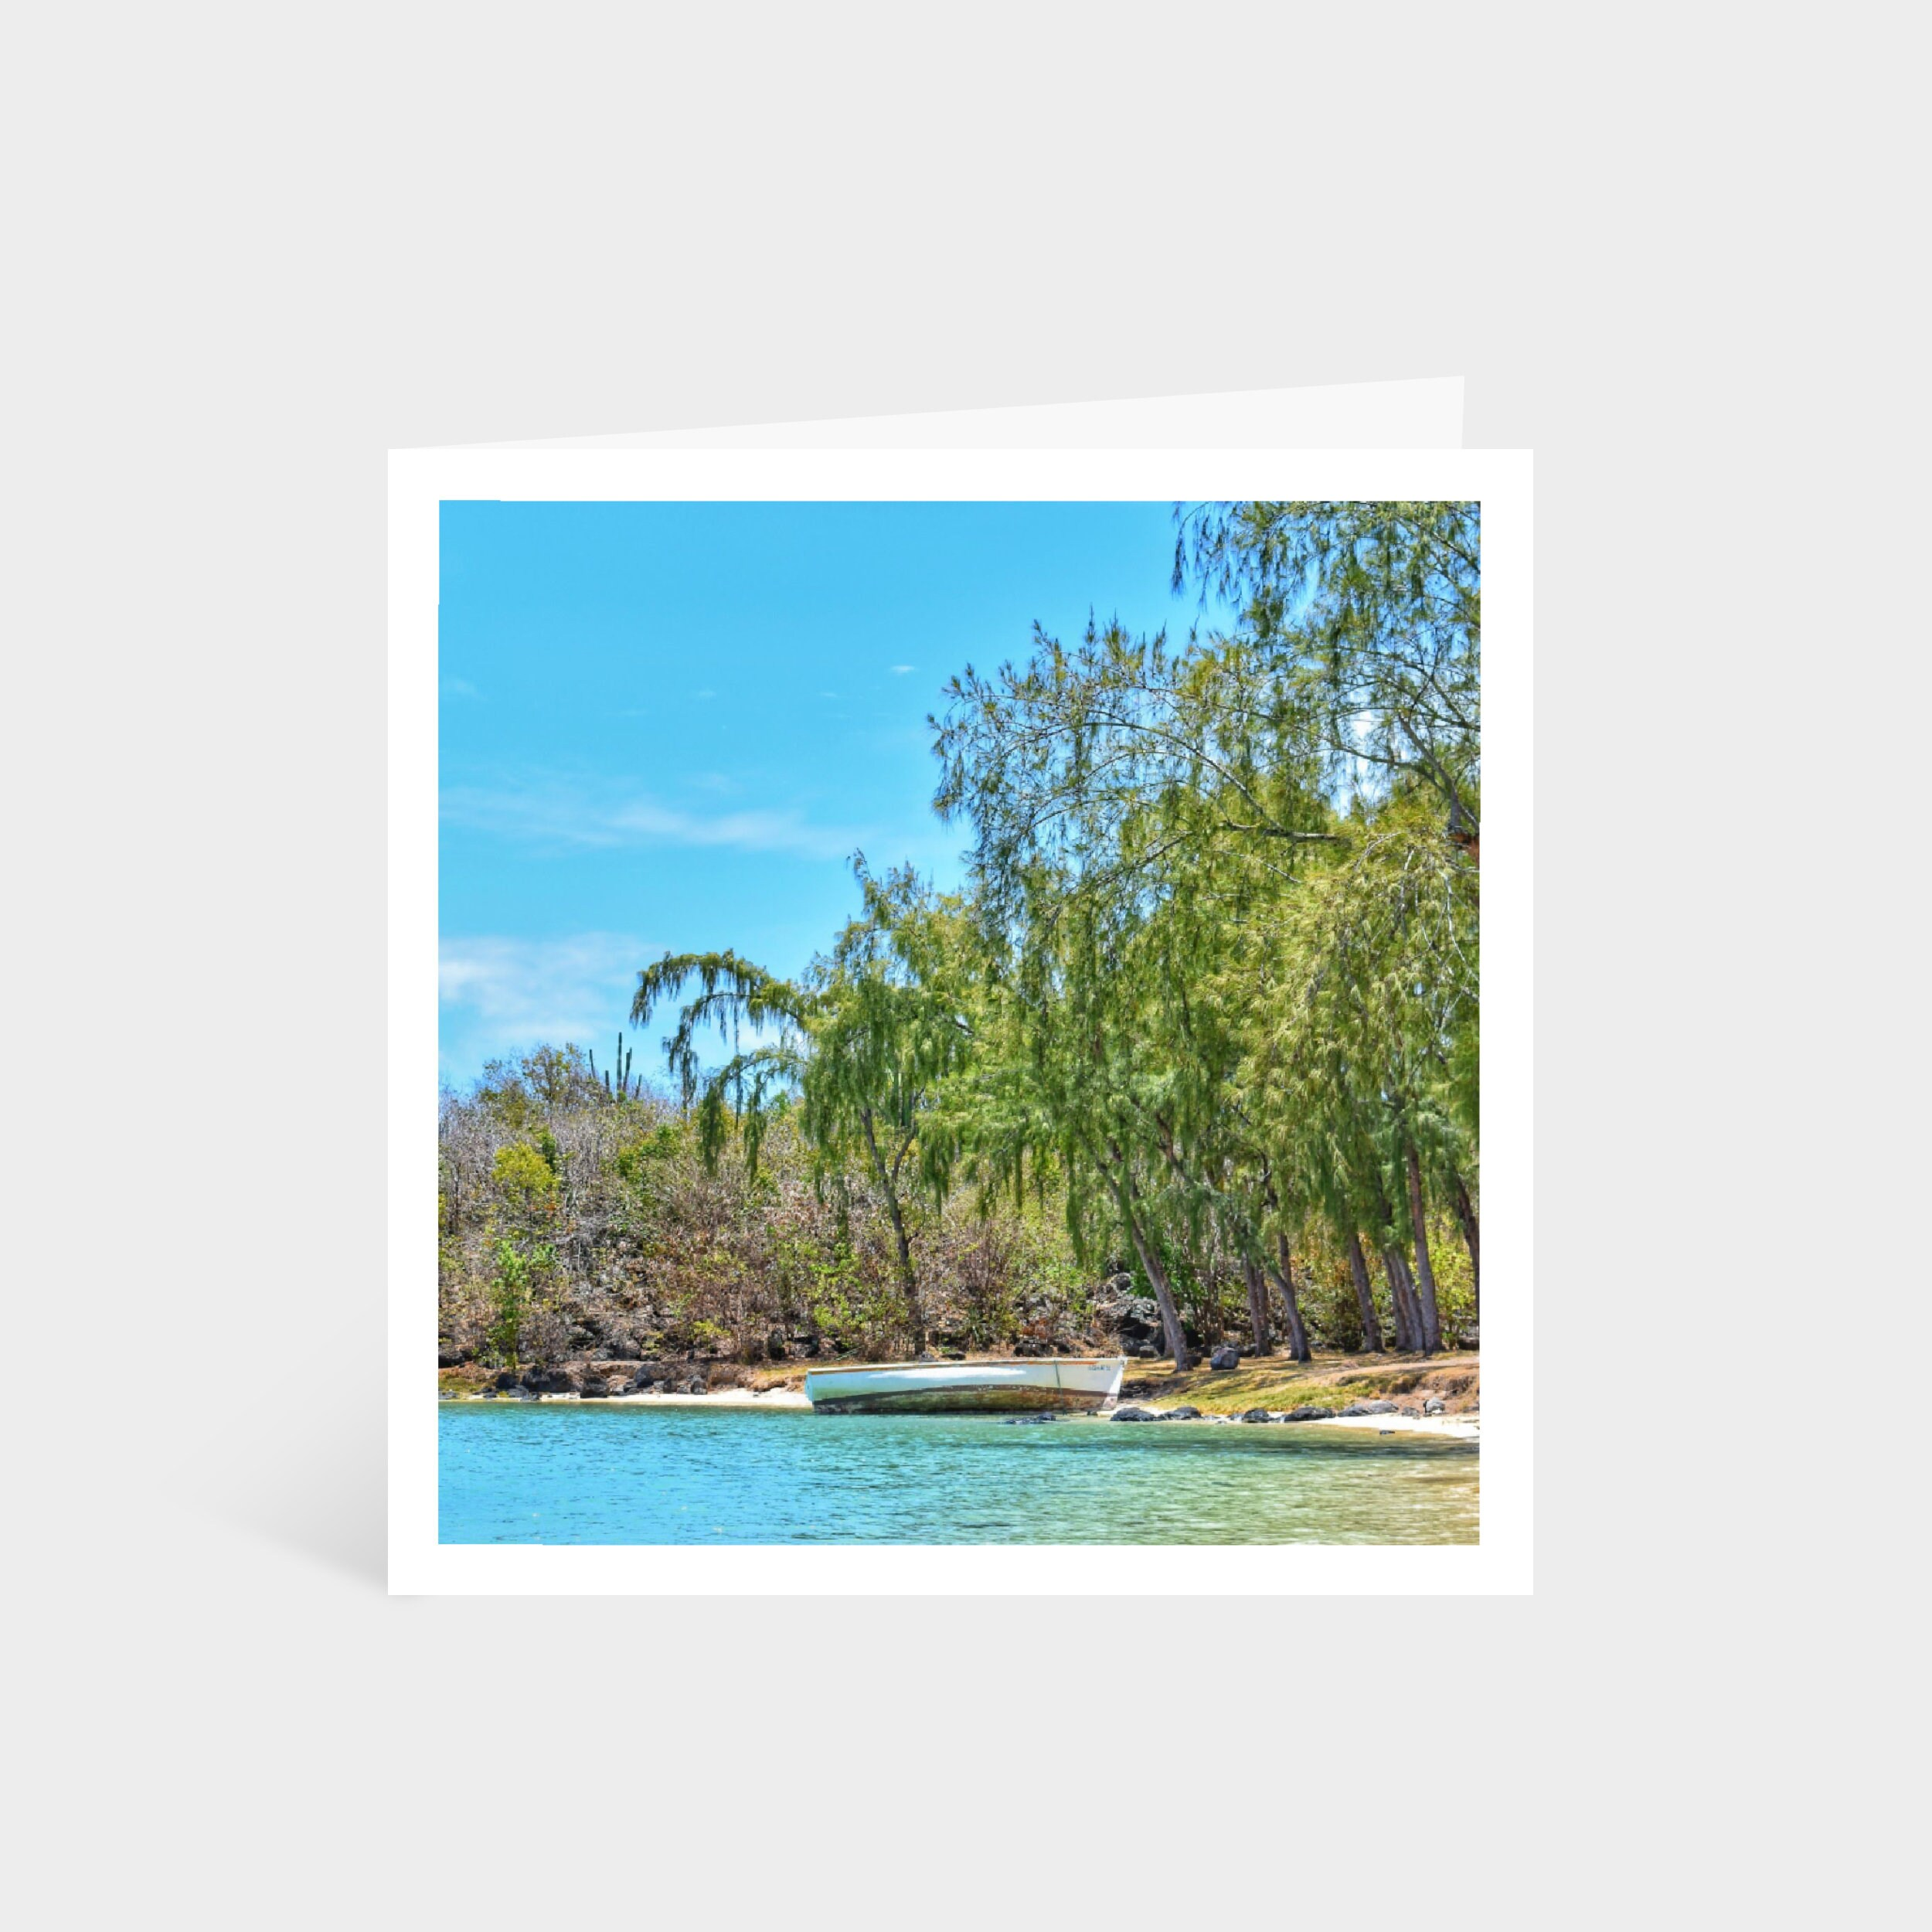 Standing square card with a photo of a beautiful tropical beach